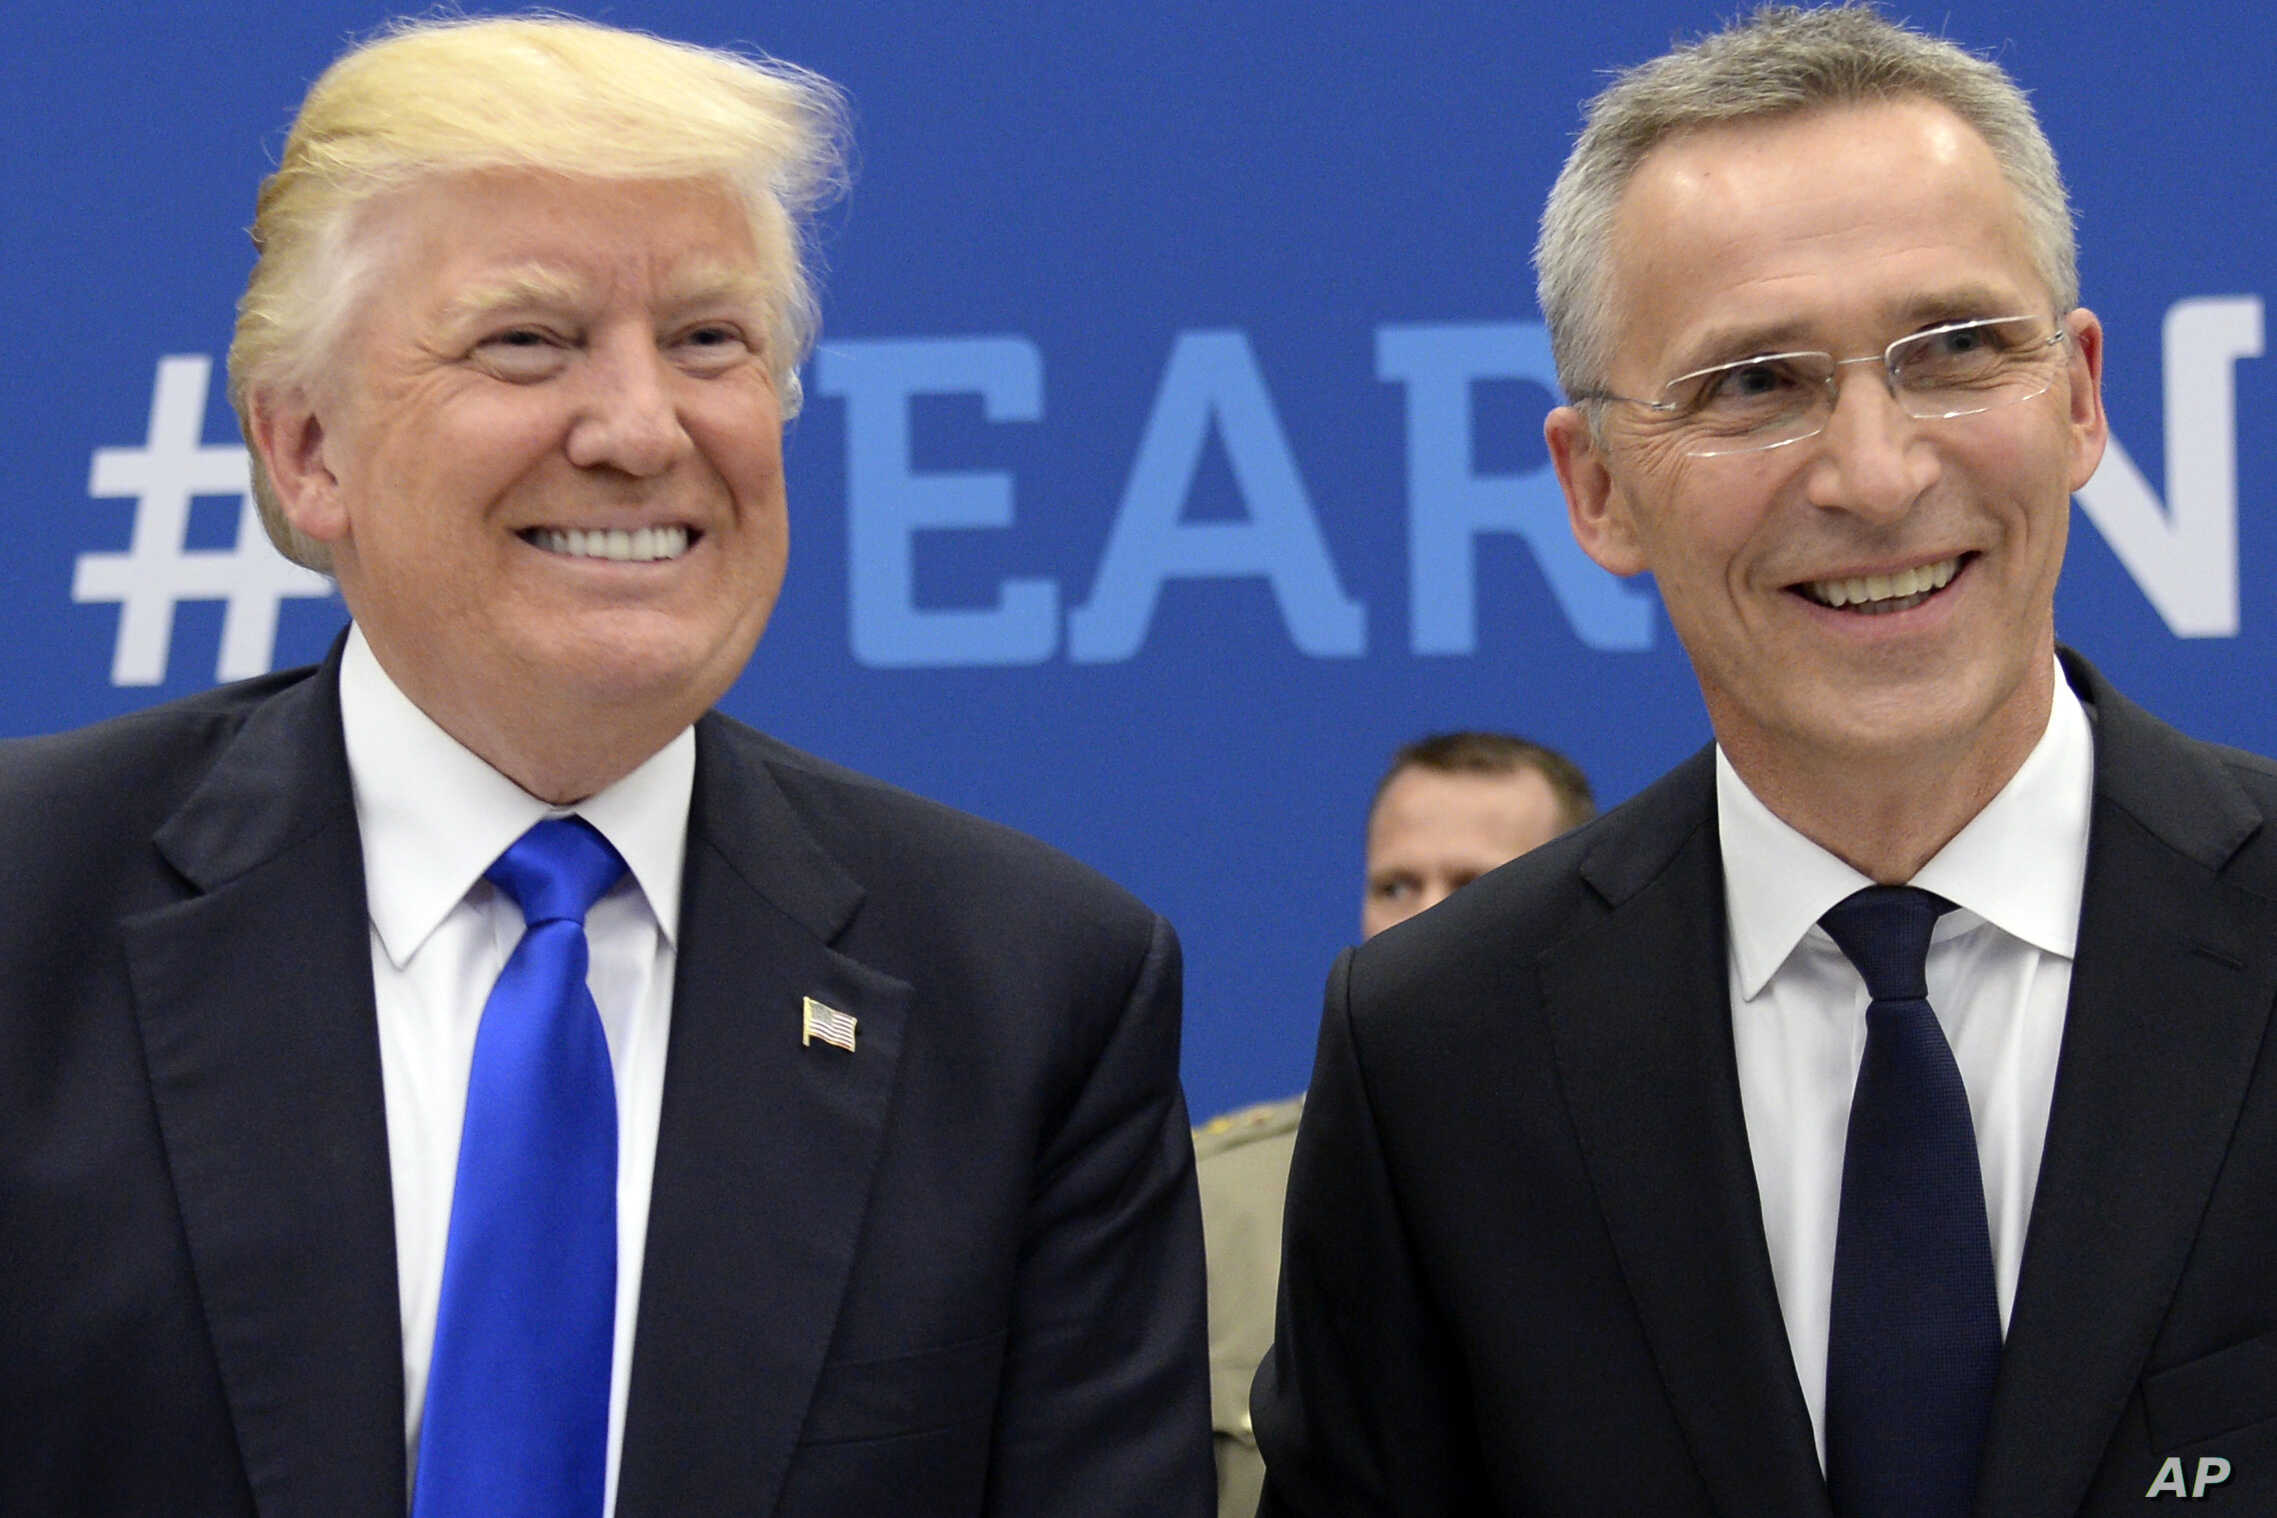 NATO Secretary General Jens Stoltenberg speaks with US President Donald Trump, left, during a summit at the NATO headquarters in Brussels, May 25, 2017.